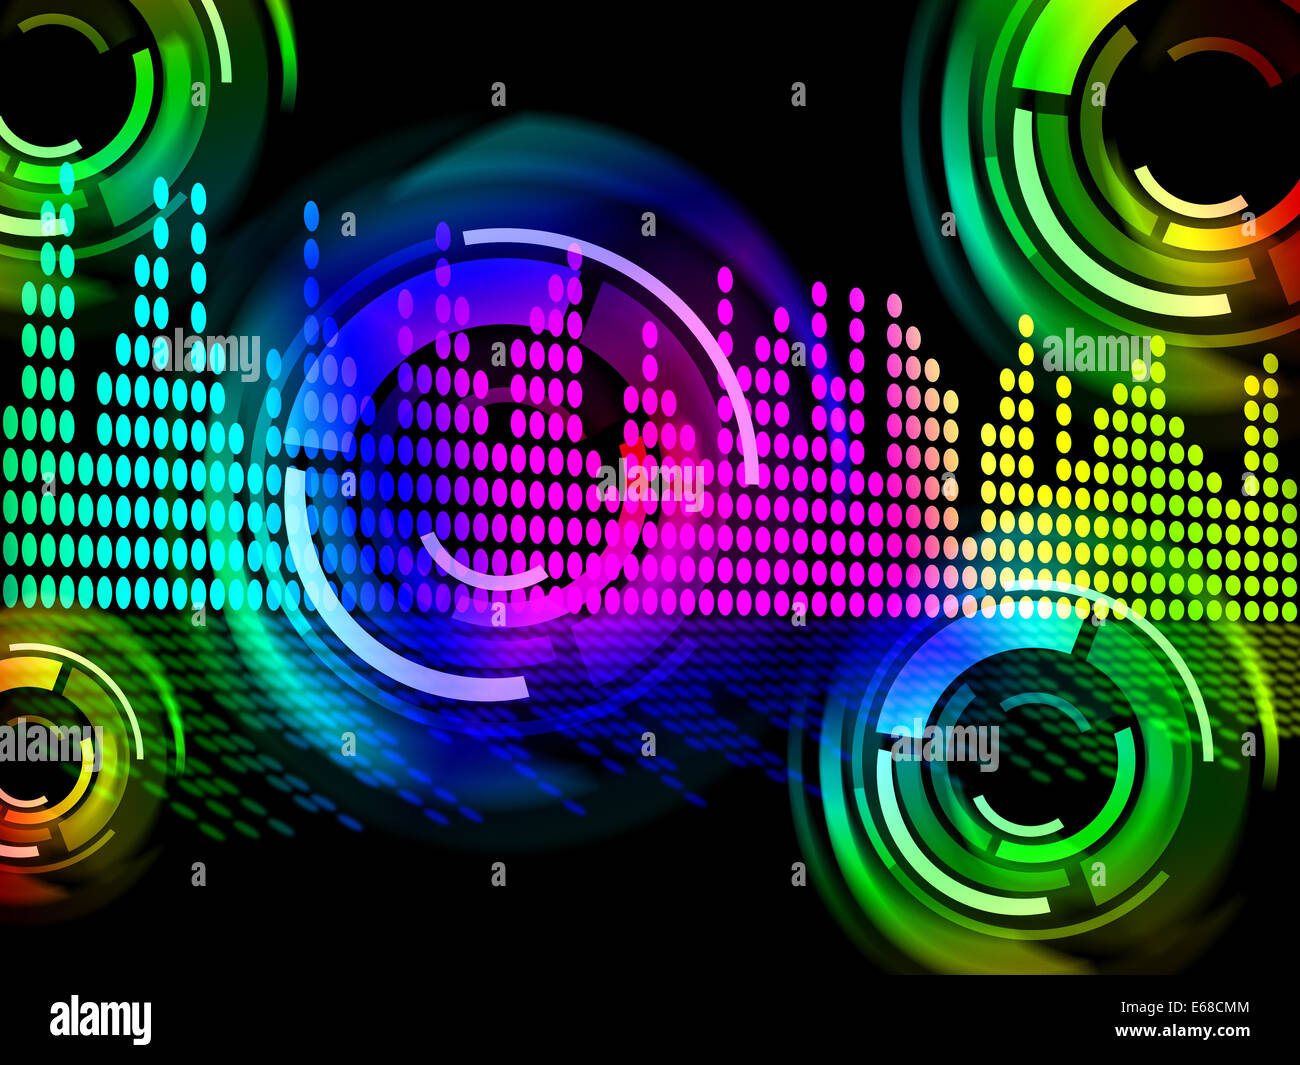 digital music beats background meaning electronic music or